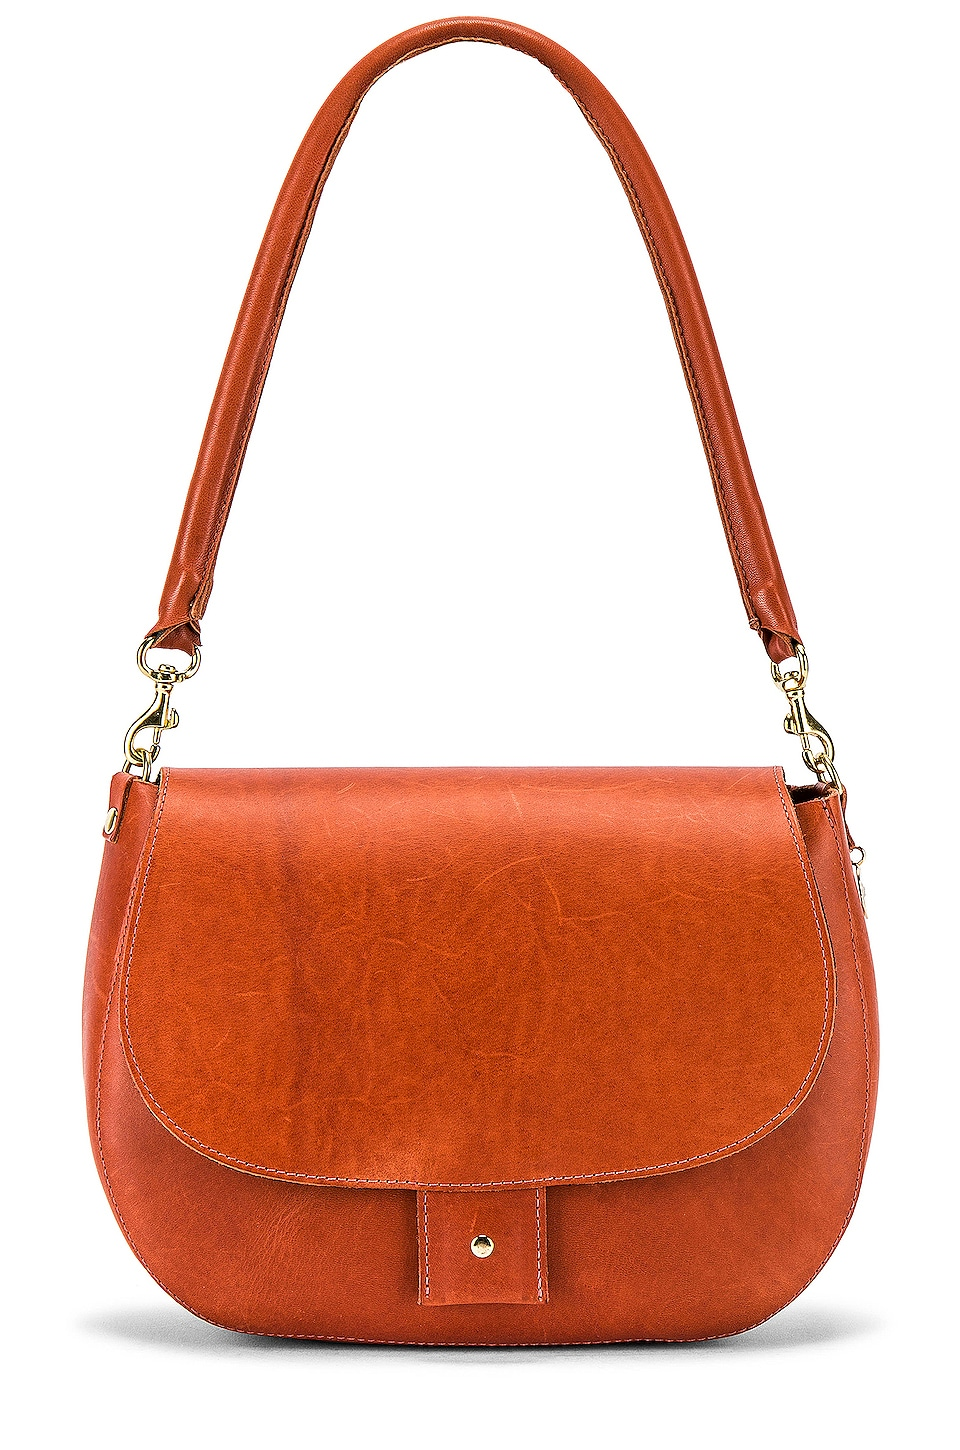 Clare V. Herieth Bag in Sienna